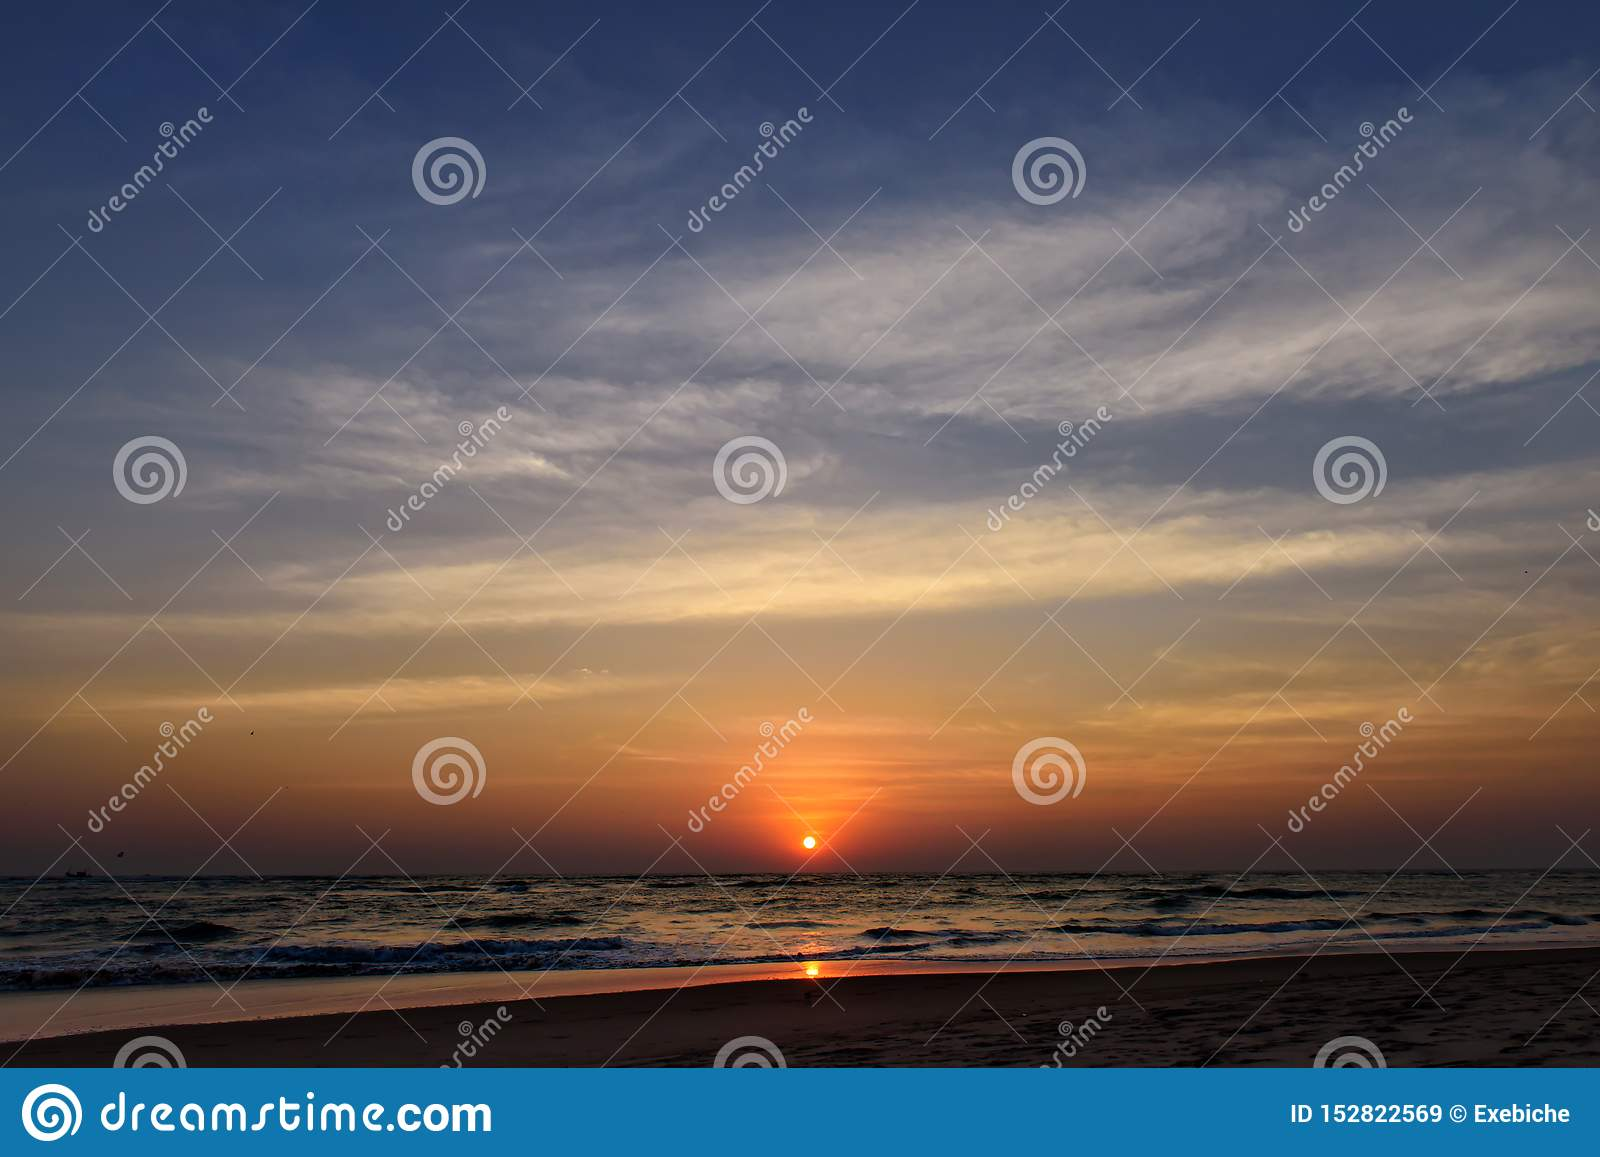 Beautiful sky colorful sunset on the ocean, natural landscapes. Deserted beach, the sun sets in the clouds above the sea